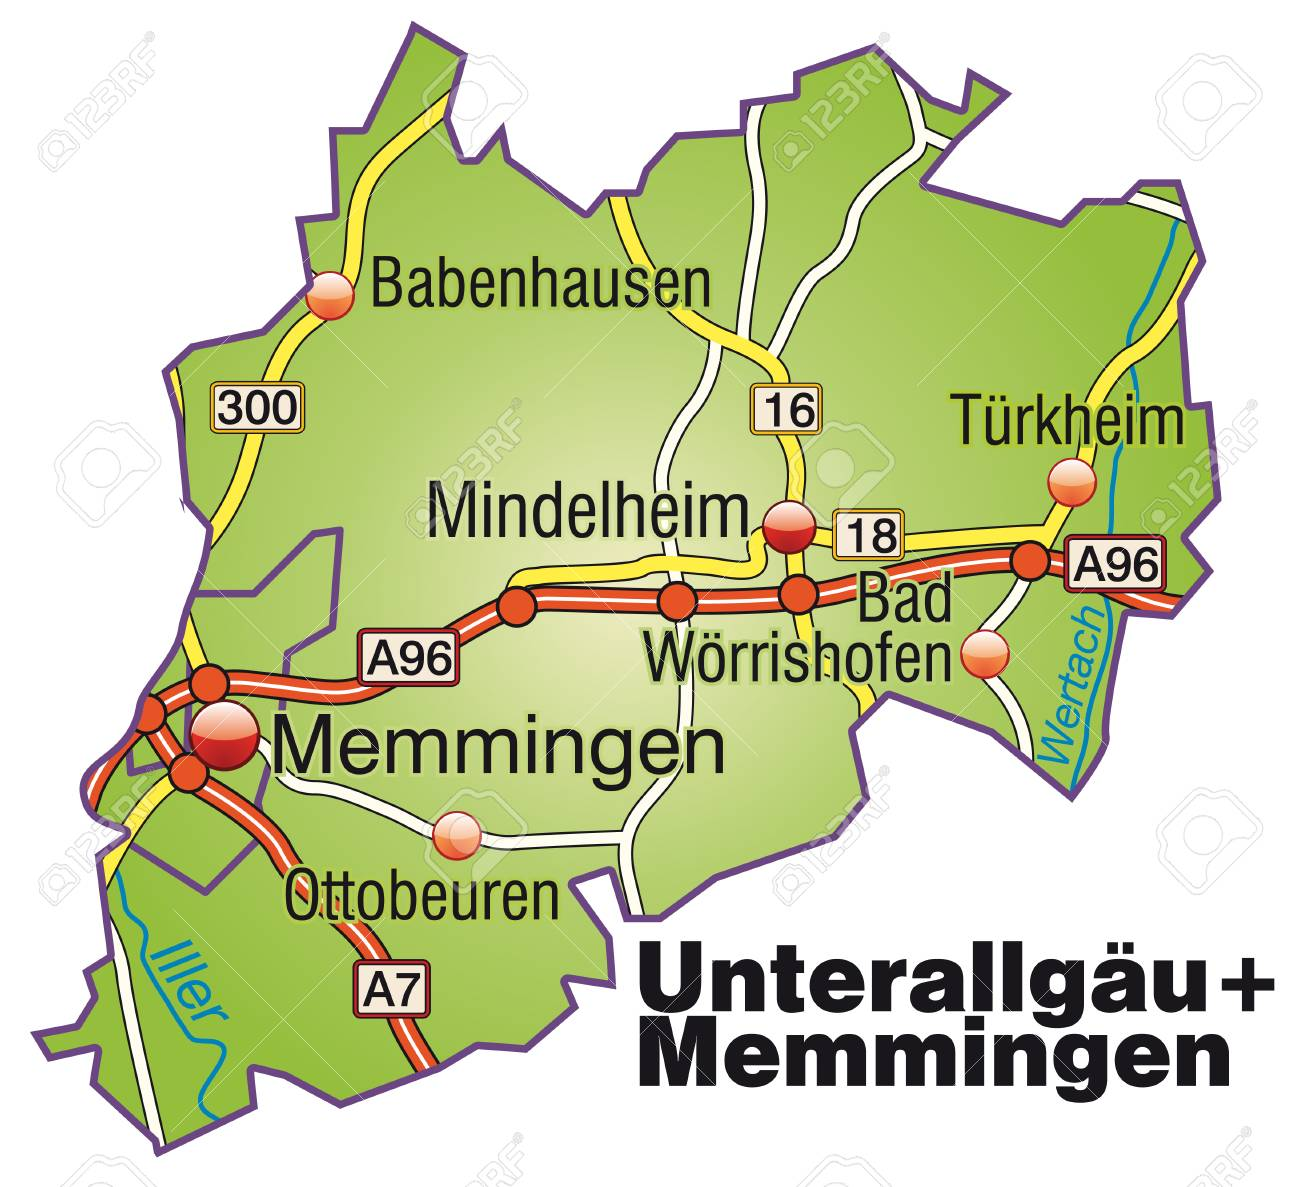 Map Of Unterallgaeu Memmingen With Highways Royalty Free Cliparts